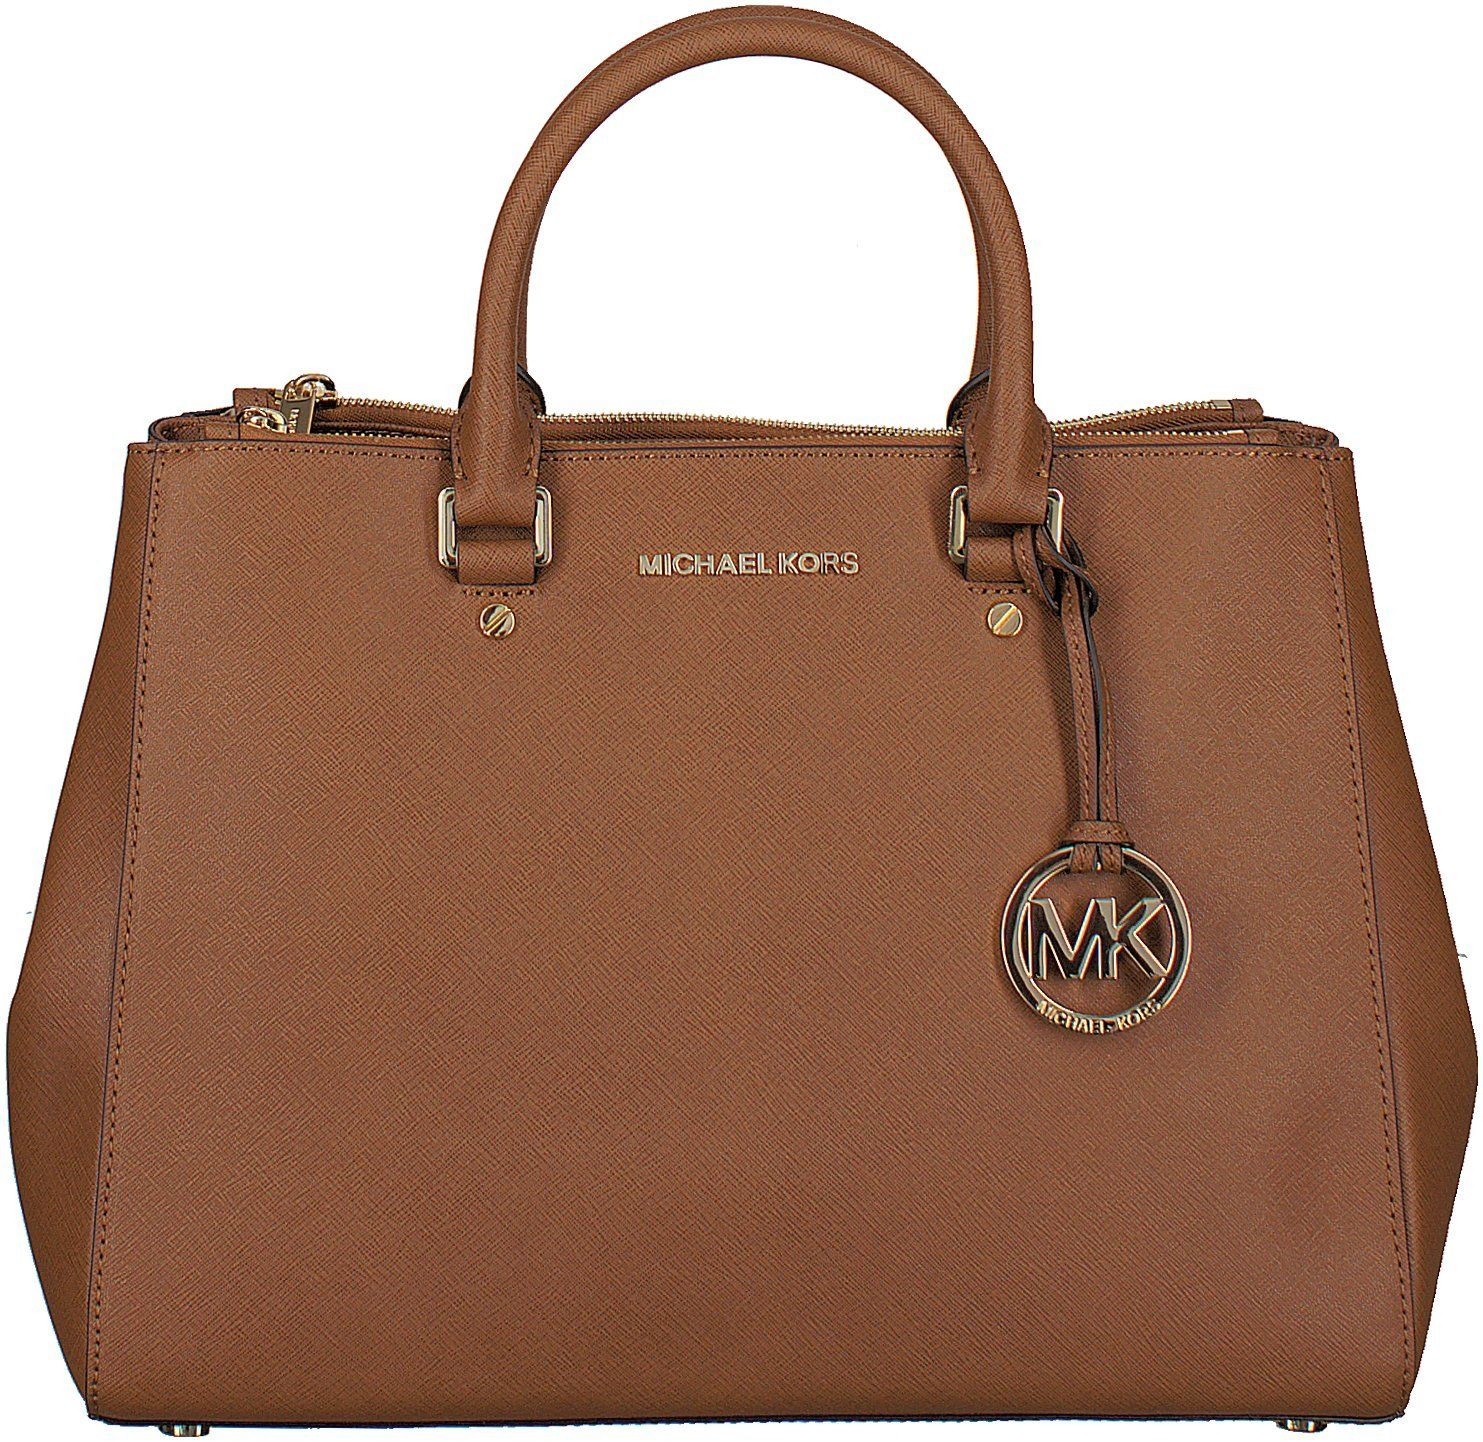 Michael Kors Jet Set Travel Dressy Saffiano Leather Large Tote 100 Cow